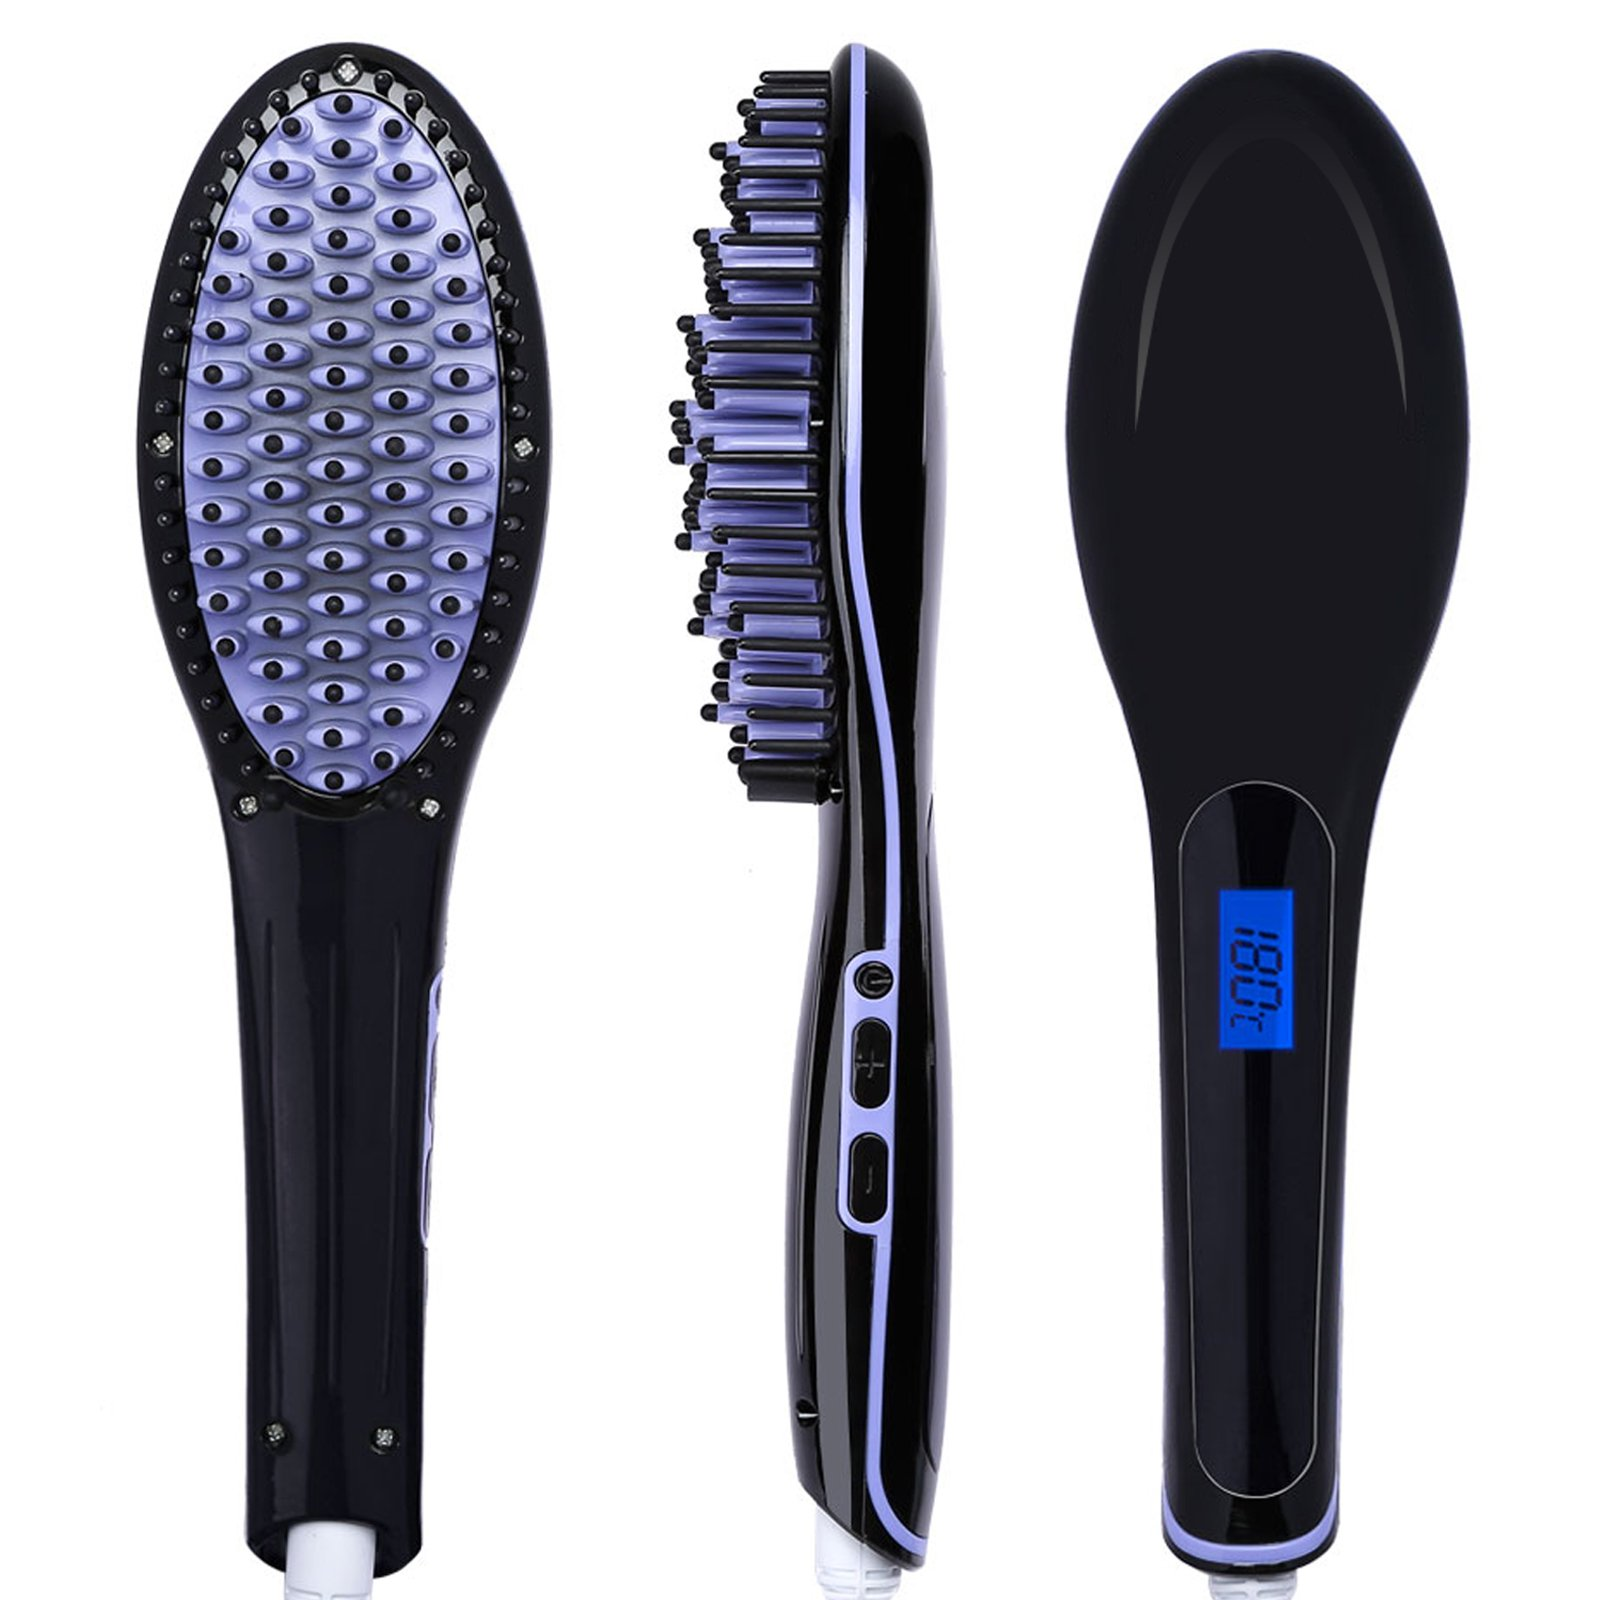 Hair Straightener, PrettyQueen Straightening Brush Ceremic Iron Detangling Comb Straightening Brush with Anion Silky Frizz-free Hair Care Anti Scald, Black with Purple